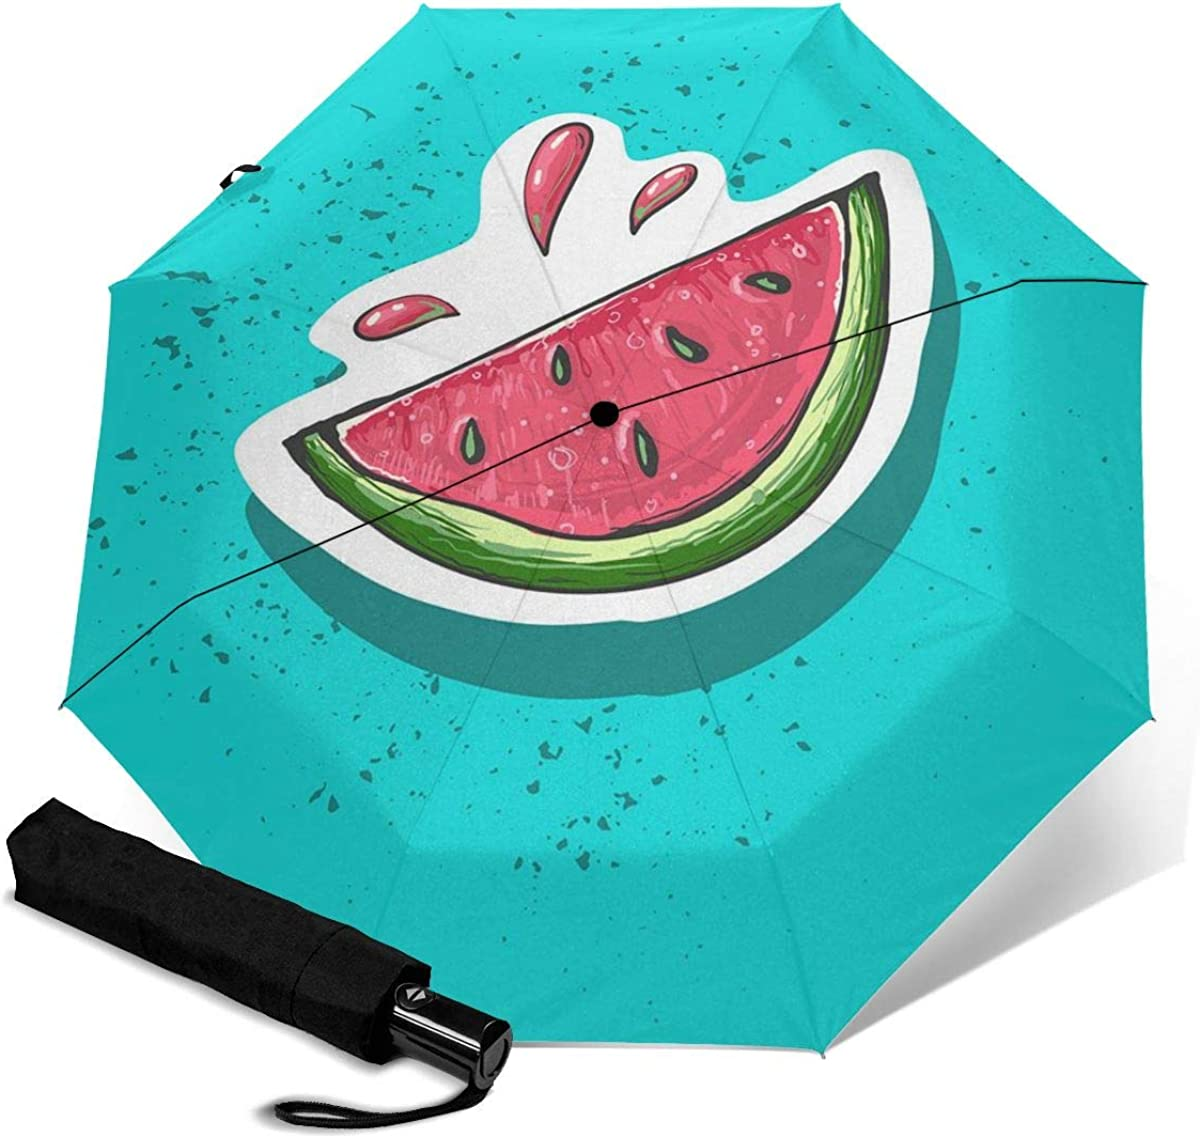 Watermelon Fruit Pattern Compact Travel Umbrella Windproof Reinforced Canopy 8 Ribs Umbrella Auto Open And Close Button Personalized